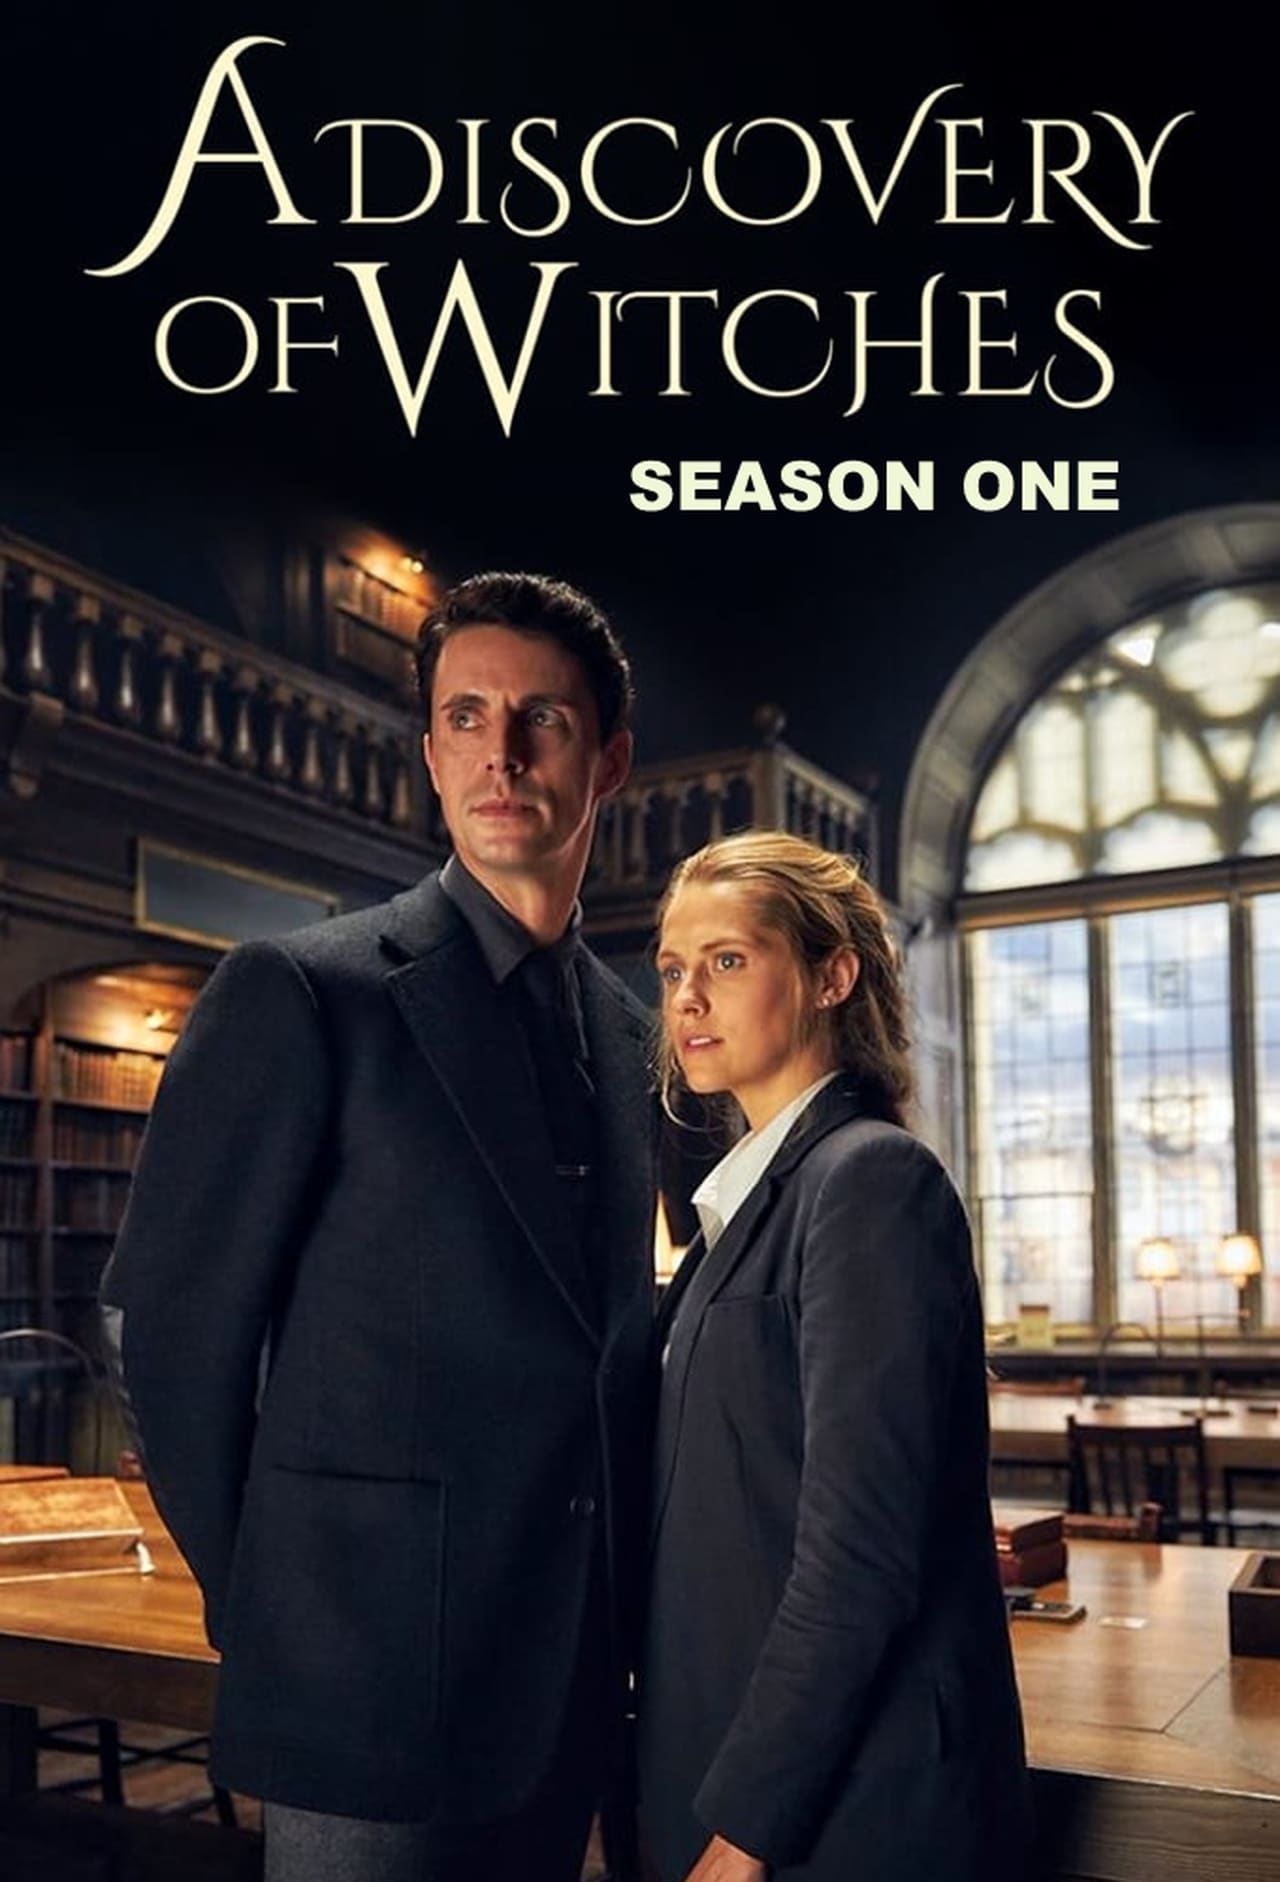 A Discovery Of Witches Season 1 (2018) putlockers cafe